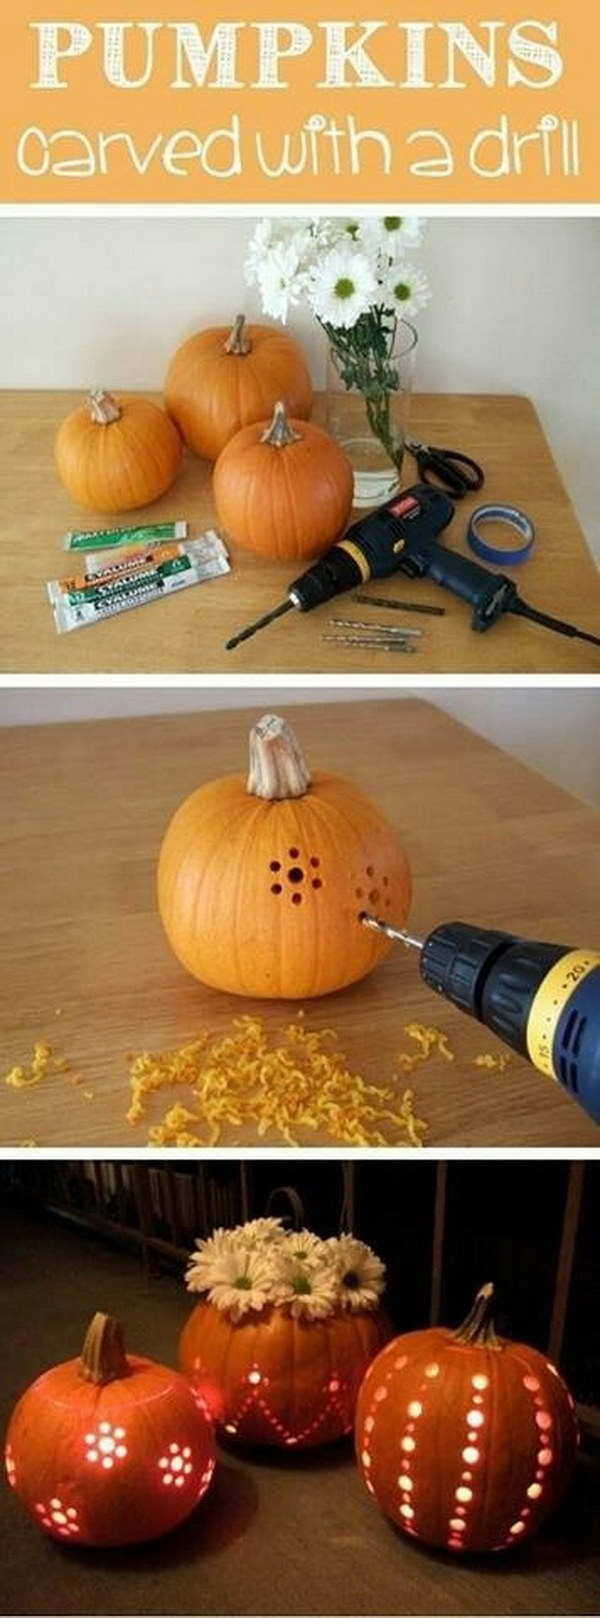 Amazing diy pumpkin carving ideas for halloween